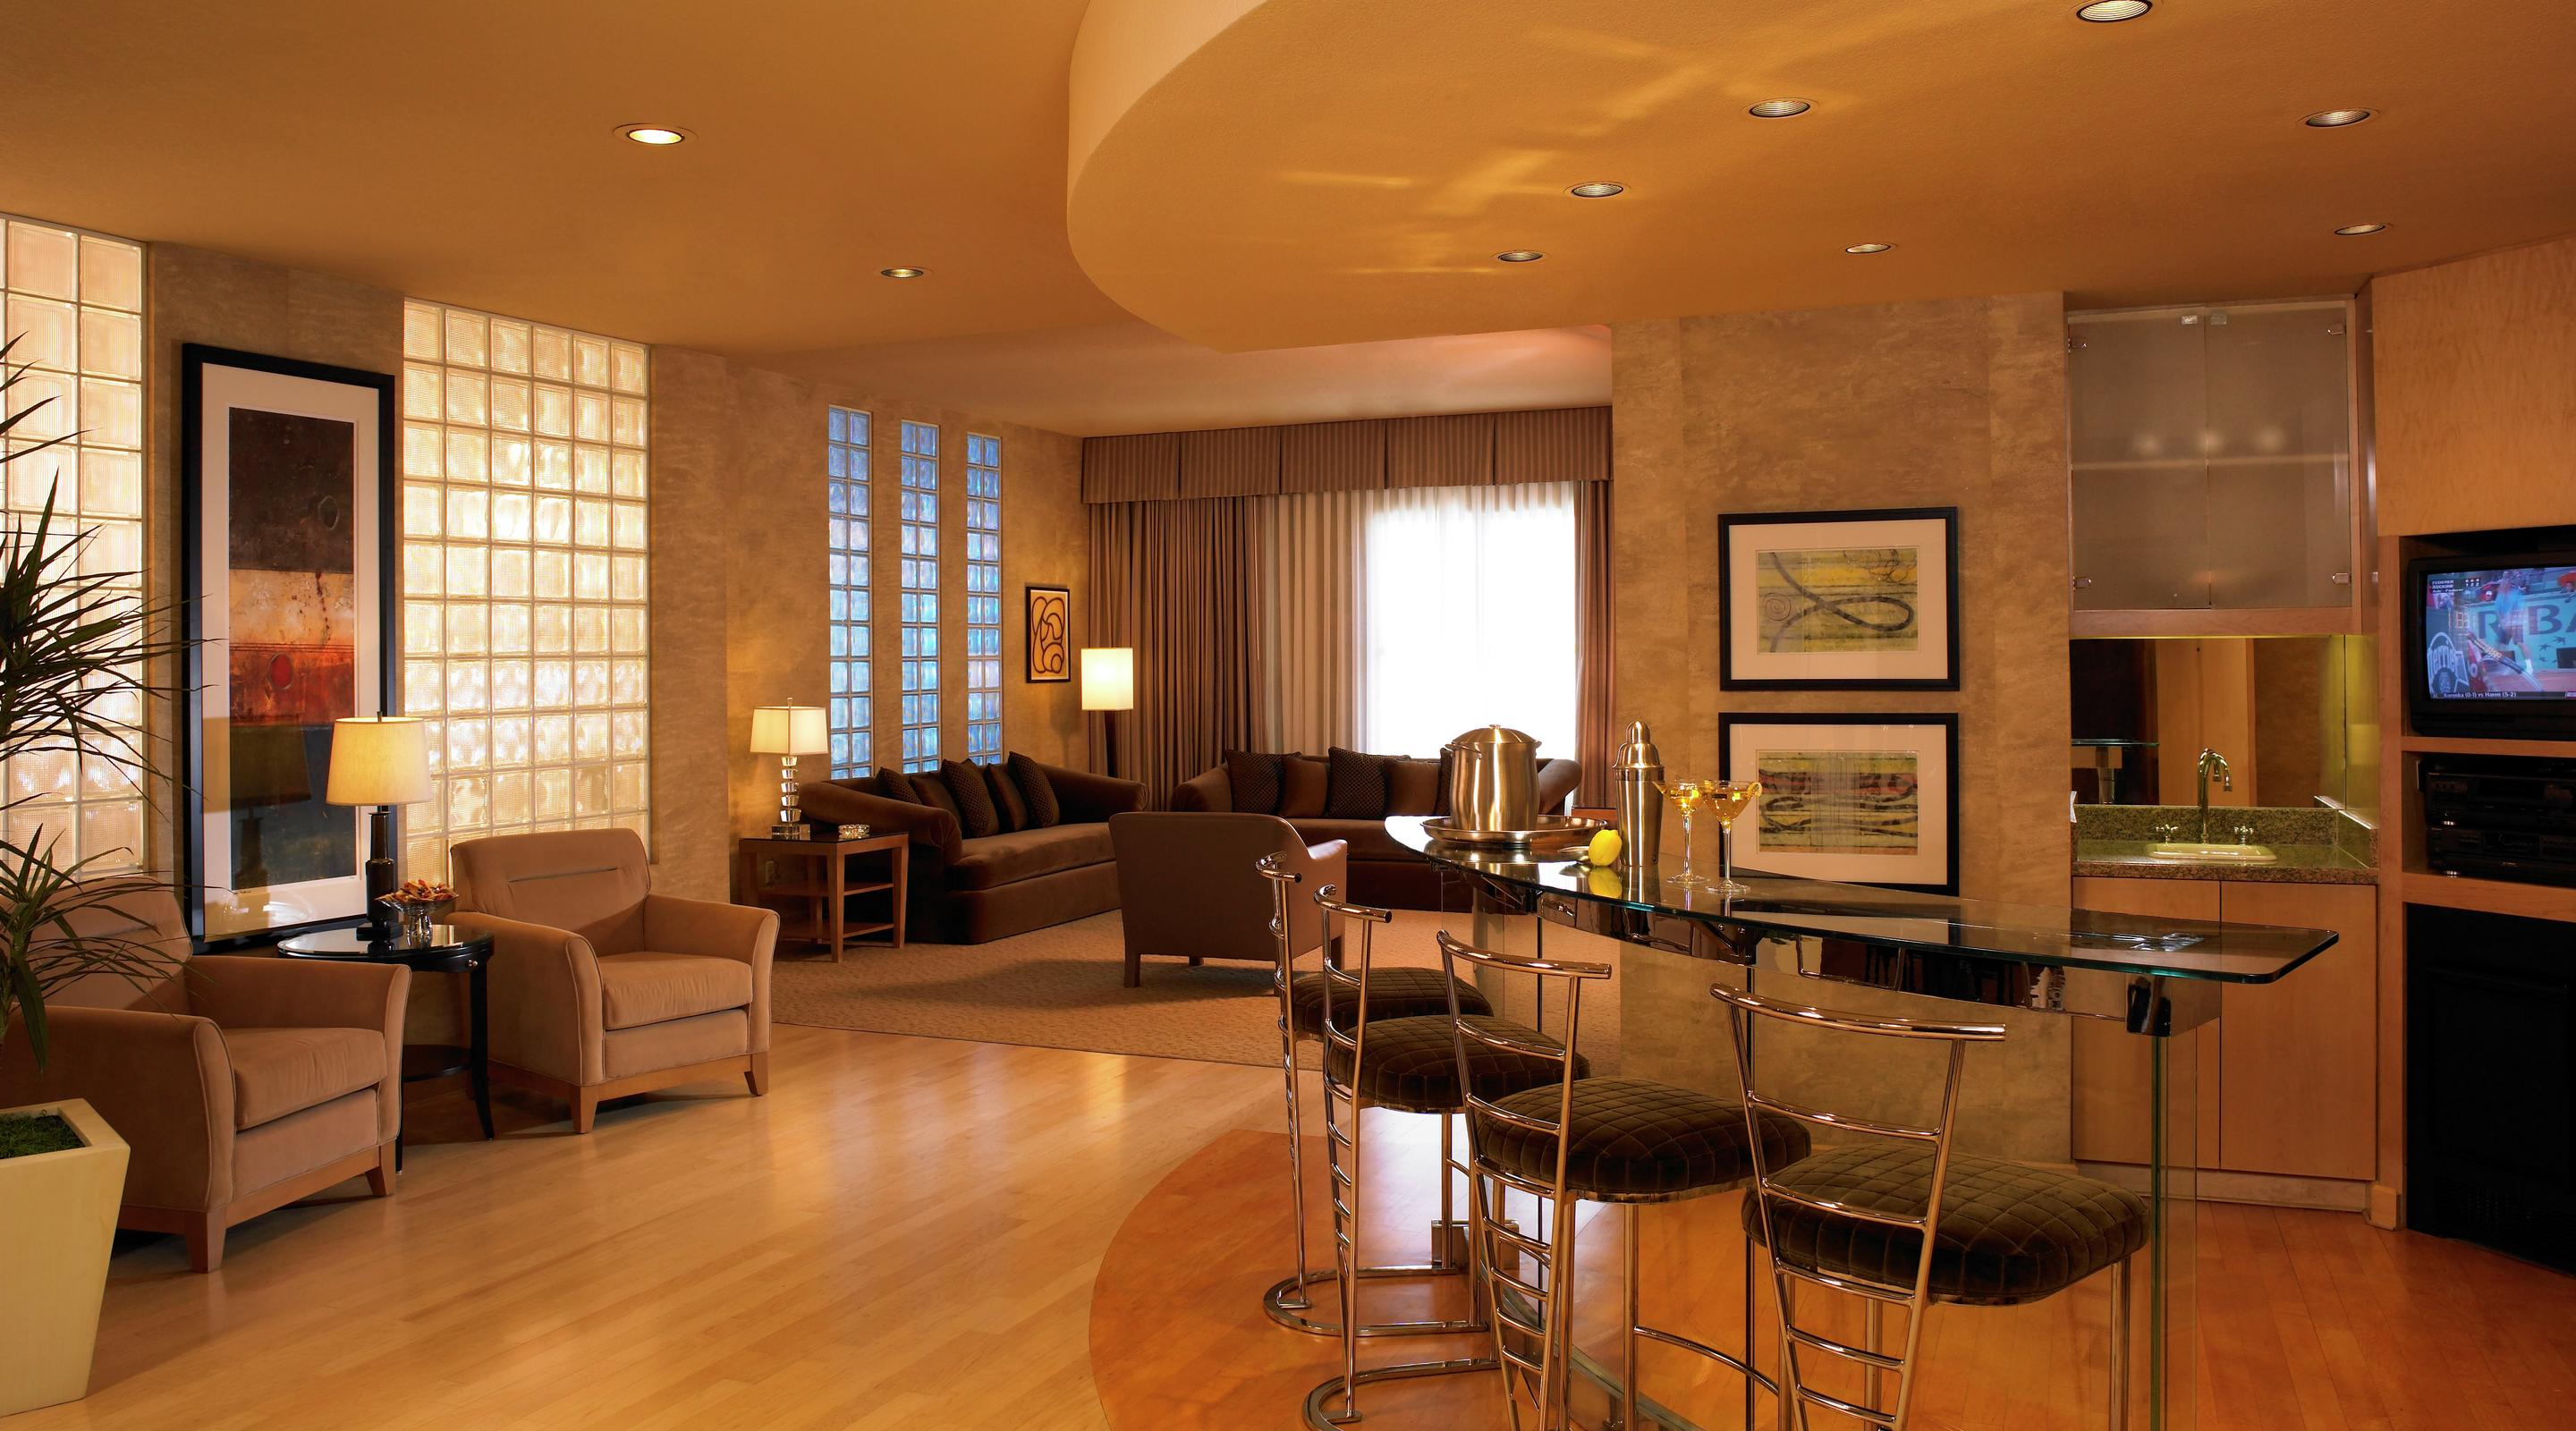 Penthouse Suite Las Vegas New York New York Hotel Casino